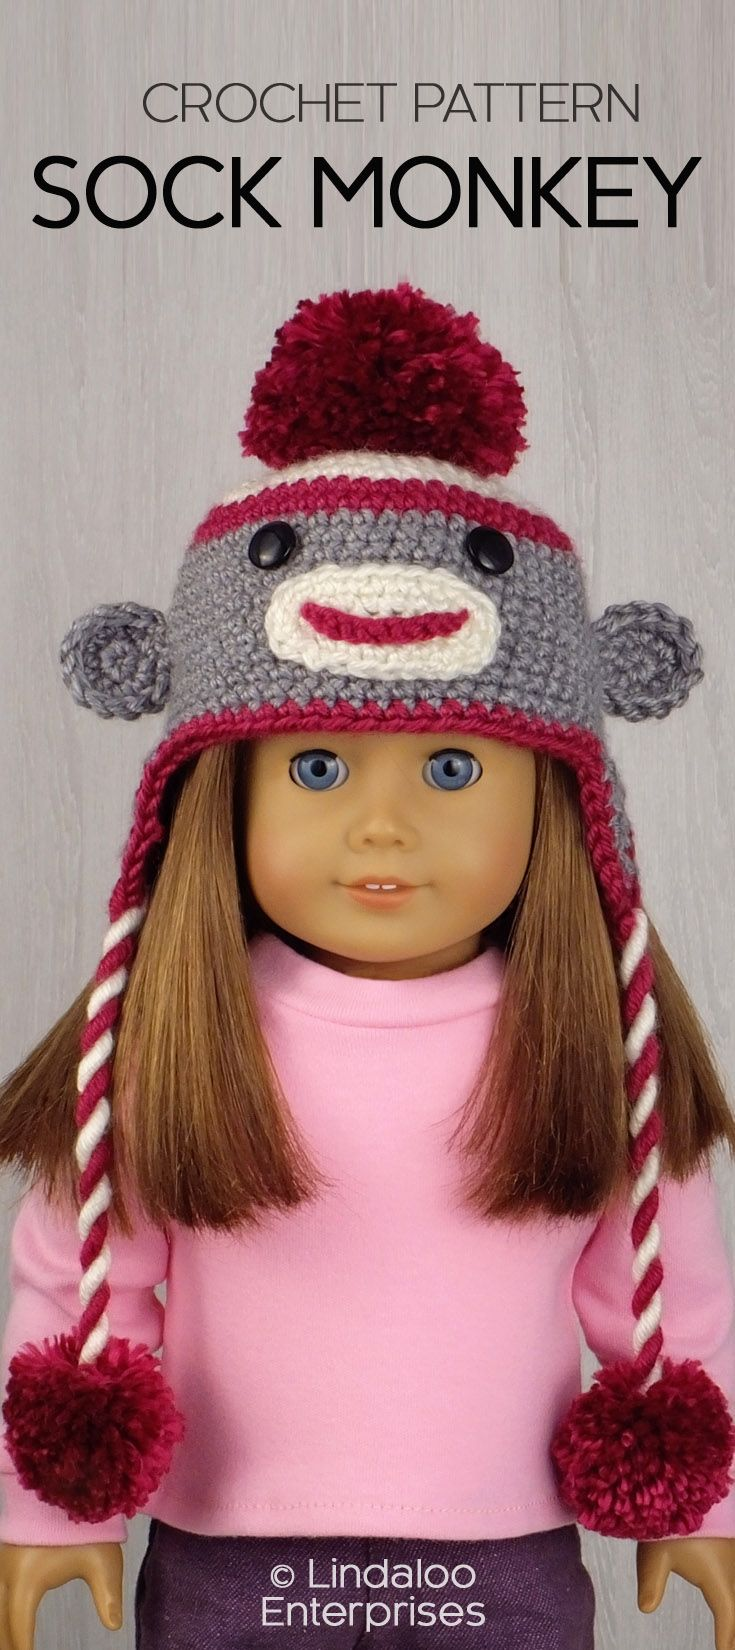 Knitting Patterns For Sock Monkey Clothes : 367 best images about american girl knit patterns on Pinterest Knit pattern...